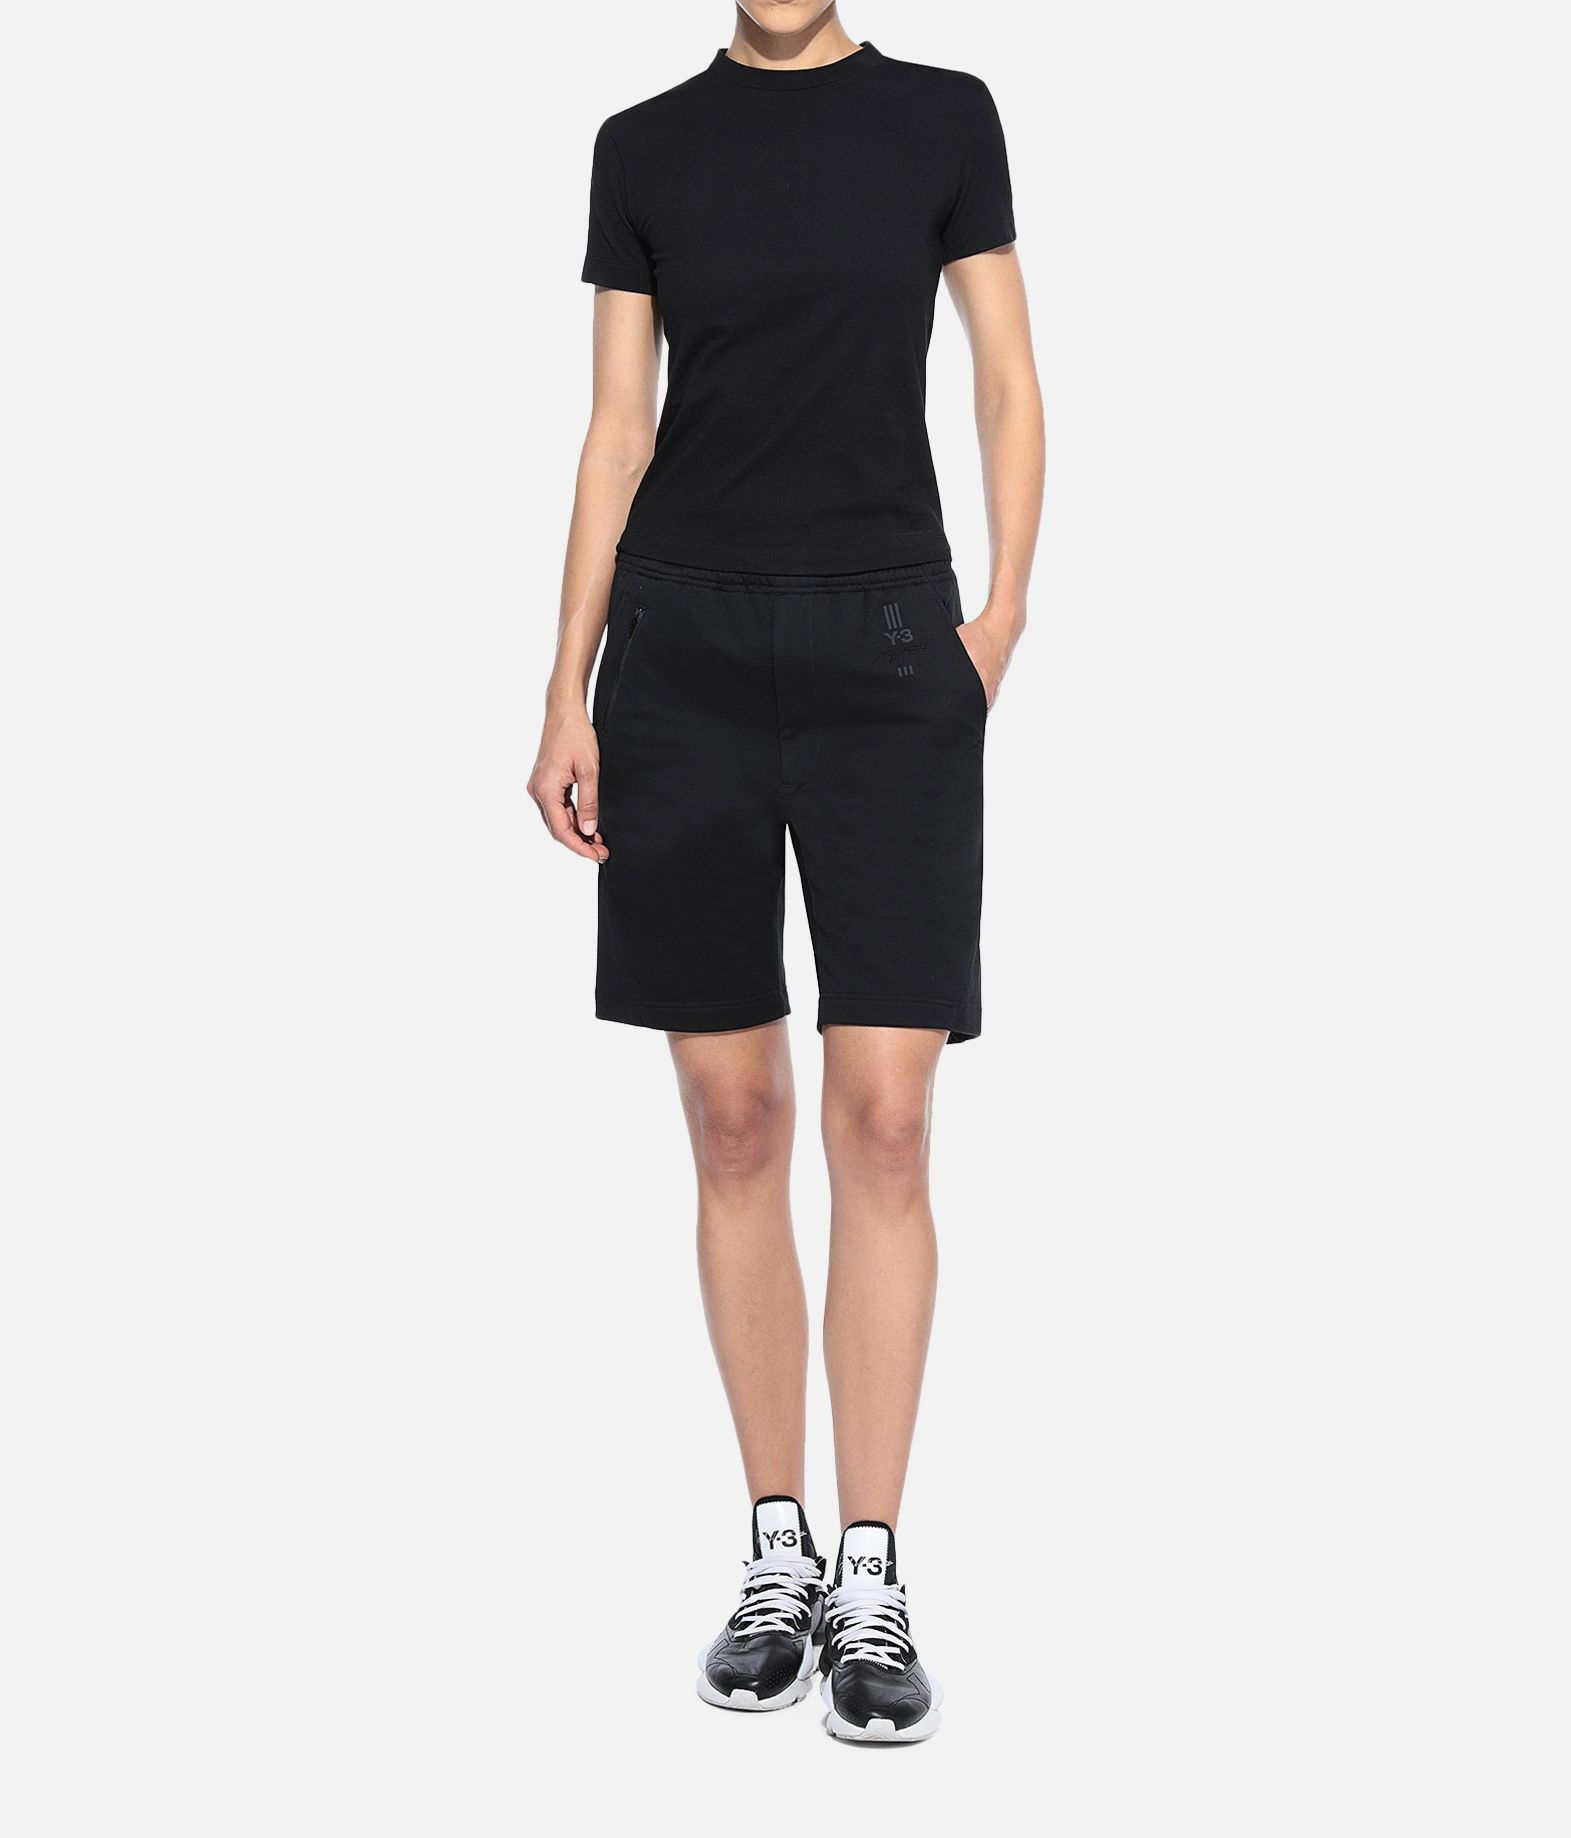 Y-3 Y-3 Yohji Love Tubular Tee Short sleeve t-shirt Woman a